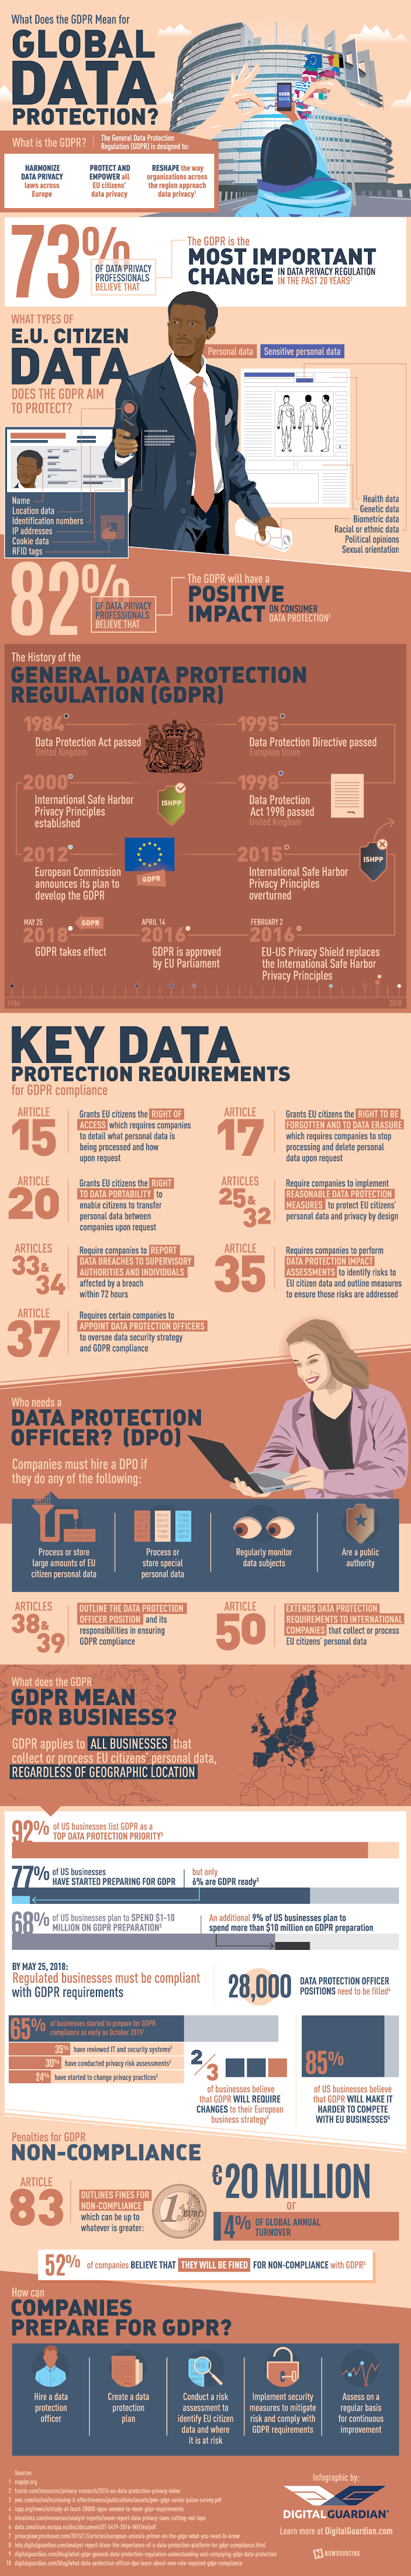 What Does The Gdpr Mean For Global Data Protection? #infographic #Data Protection #infographics #Data #Global Data #Infographic